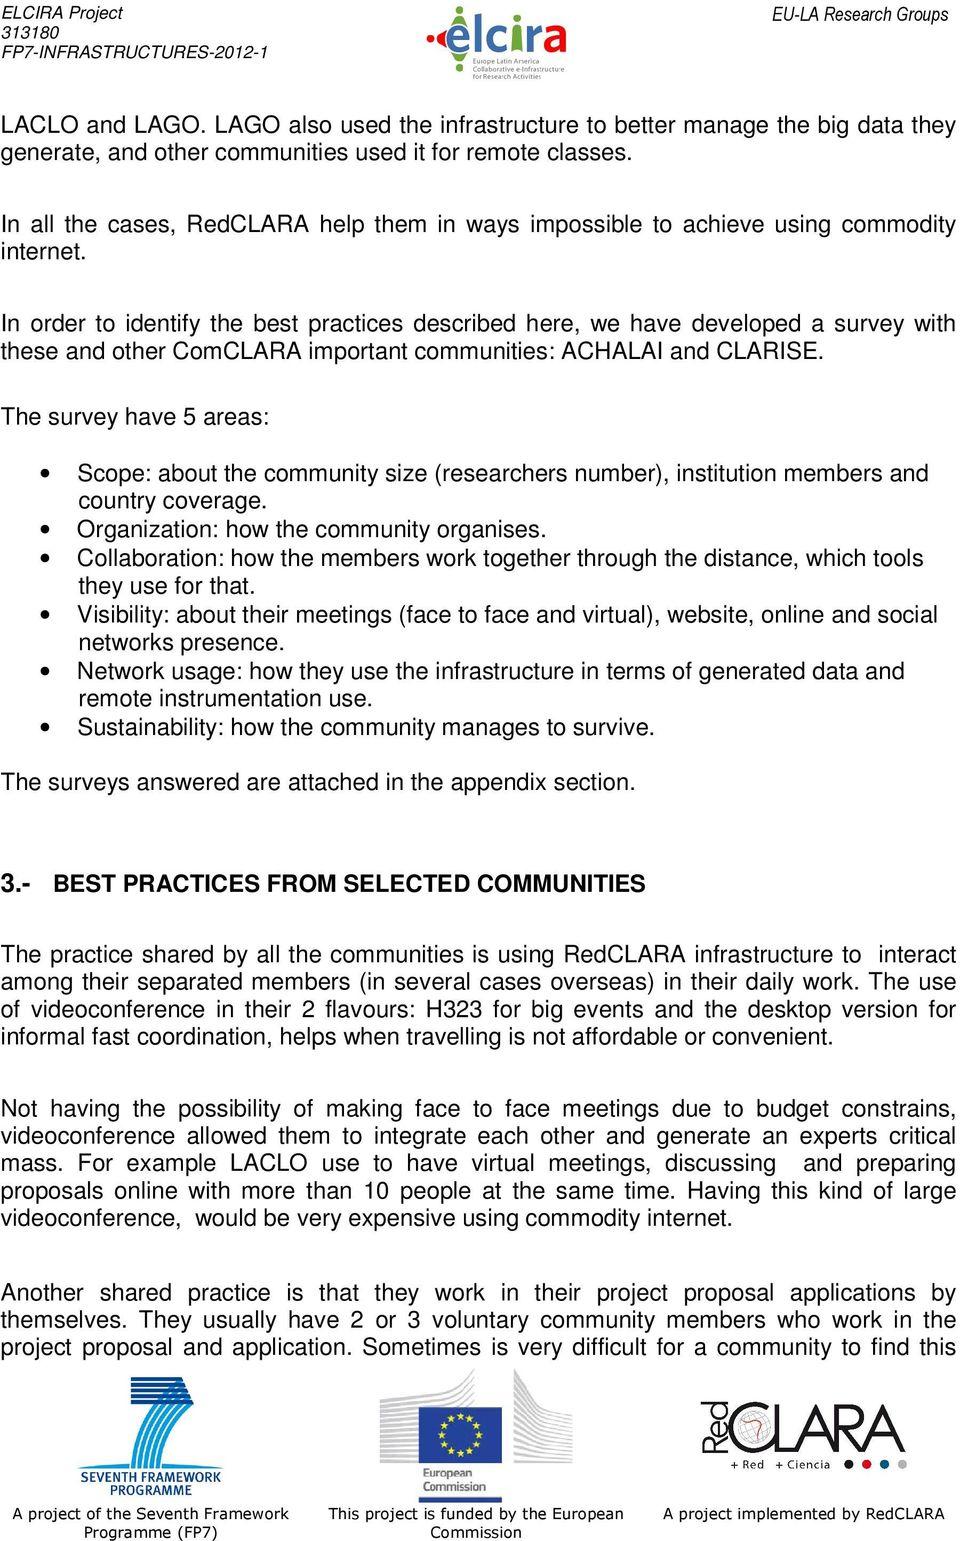 In order to identify the best practices described here, we have developed a survey with these and other ComCLARA important communities: ACHALAI and CLARISE.